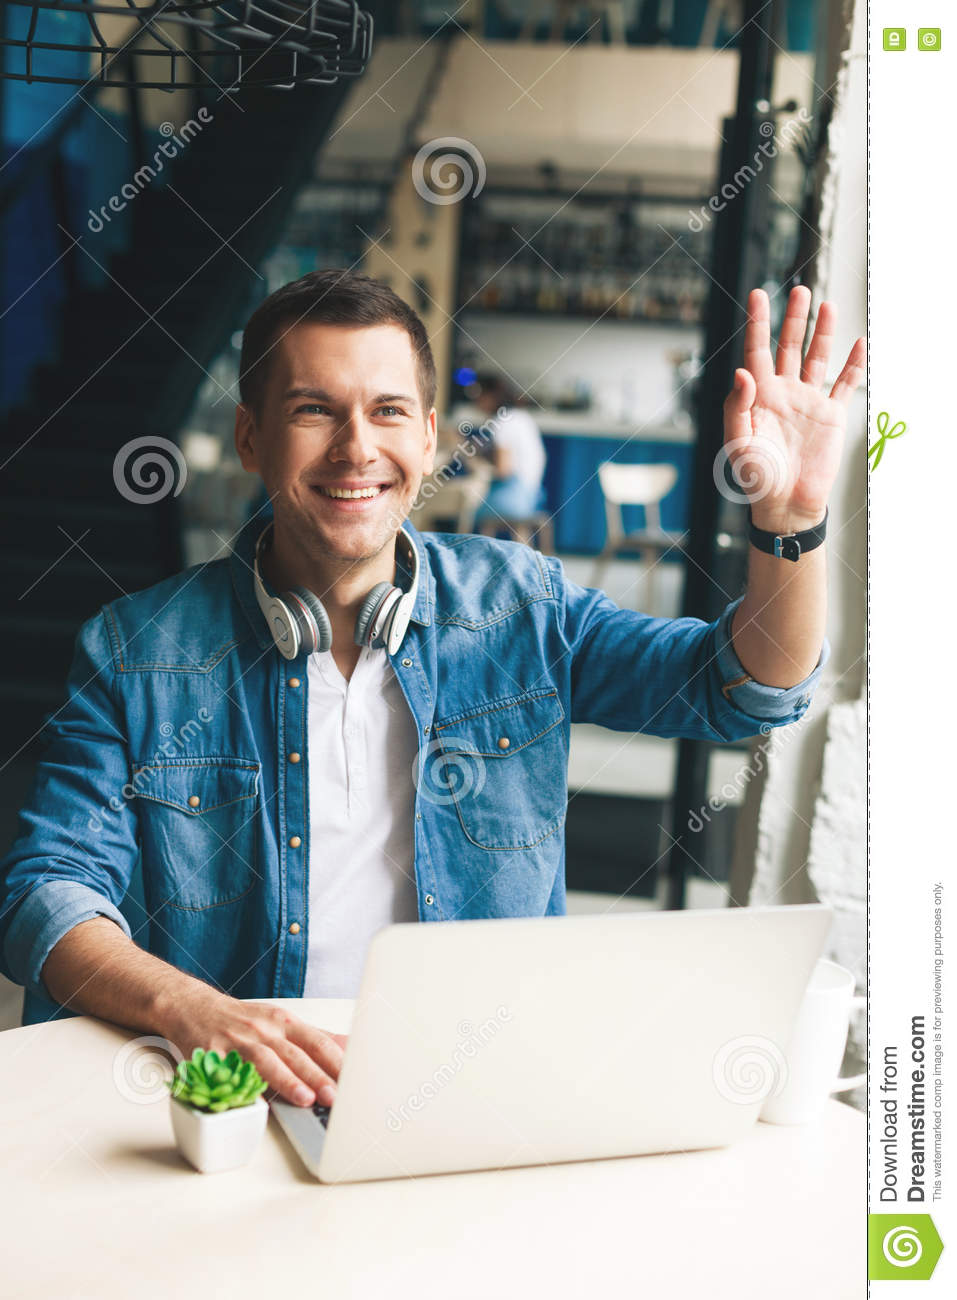 Handsome guy is greeting someone in cafeteria stock image image of handsome guy is greeting someone in cafeteria m4hsunfo